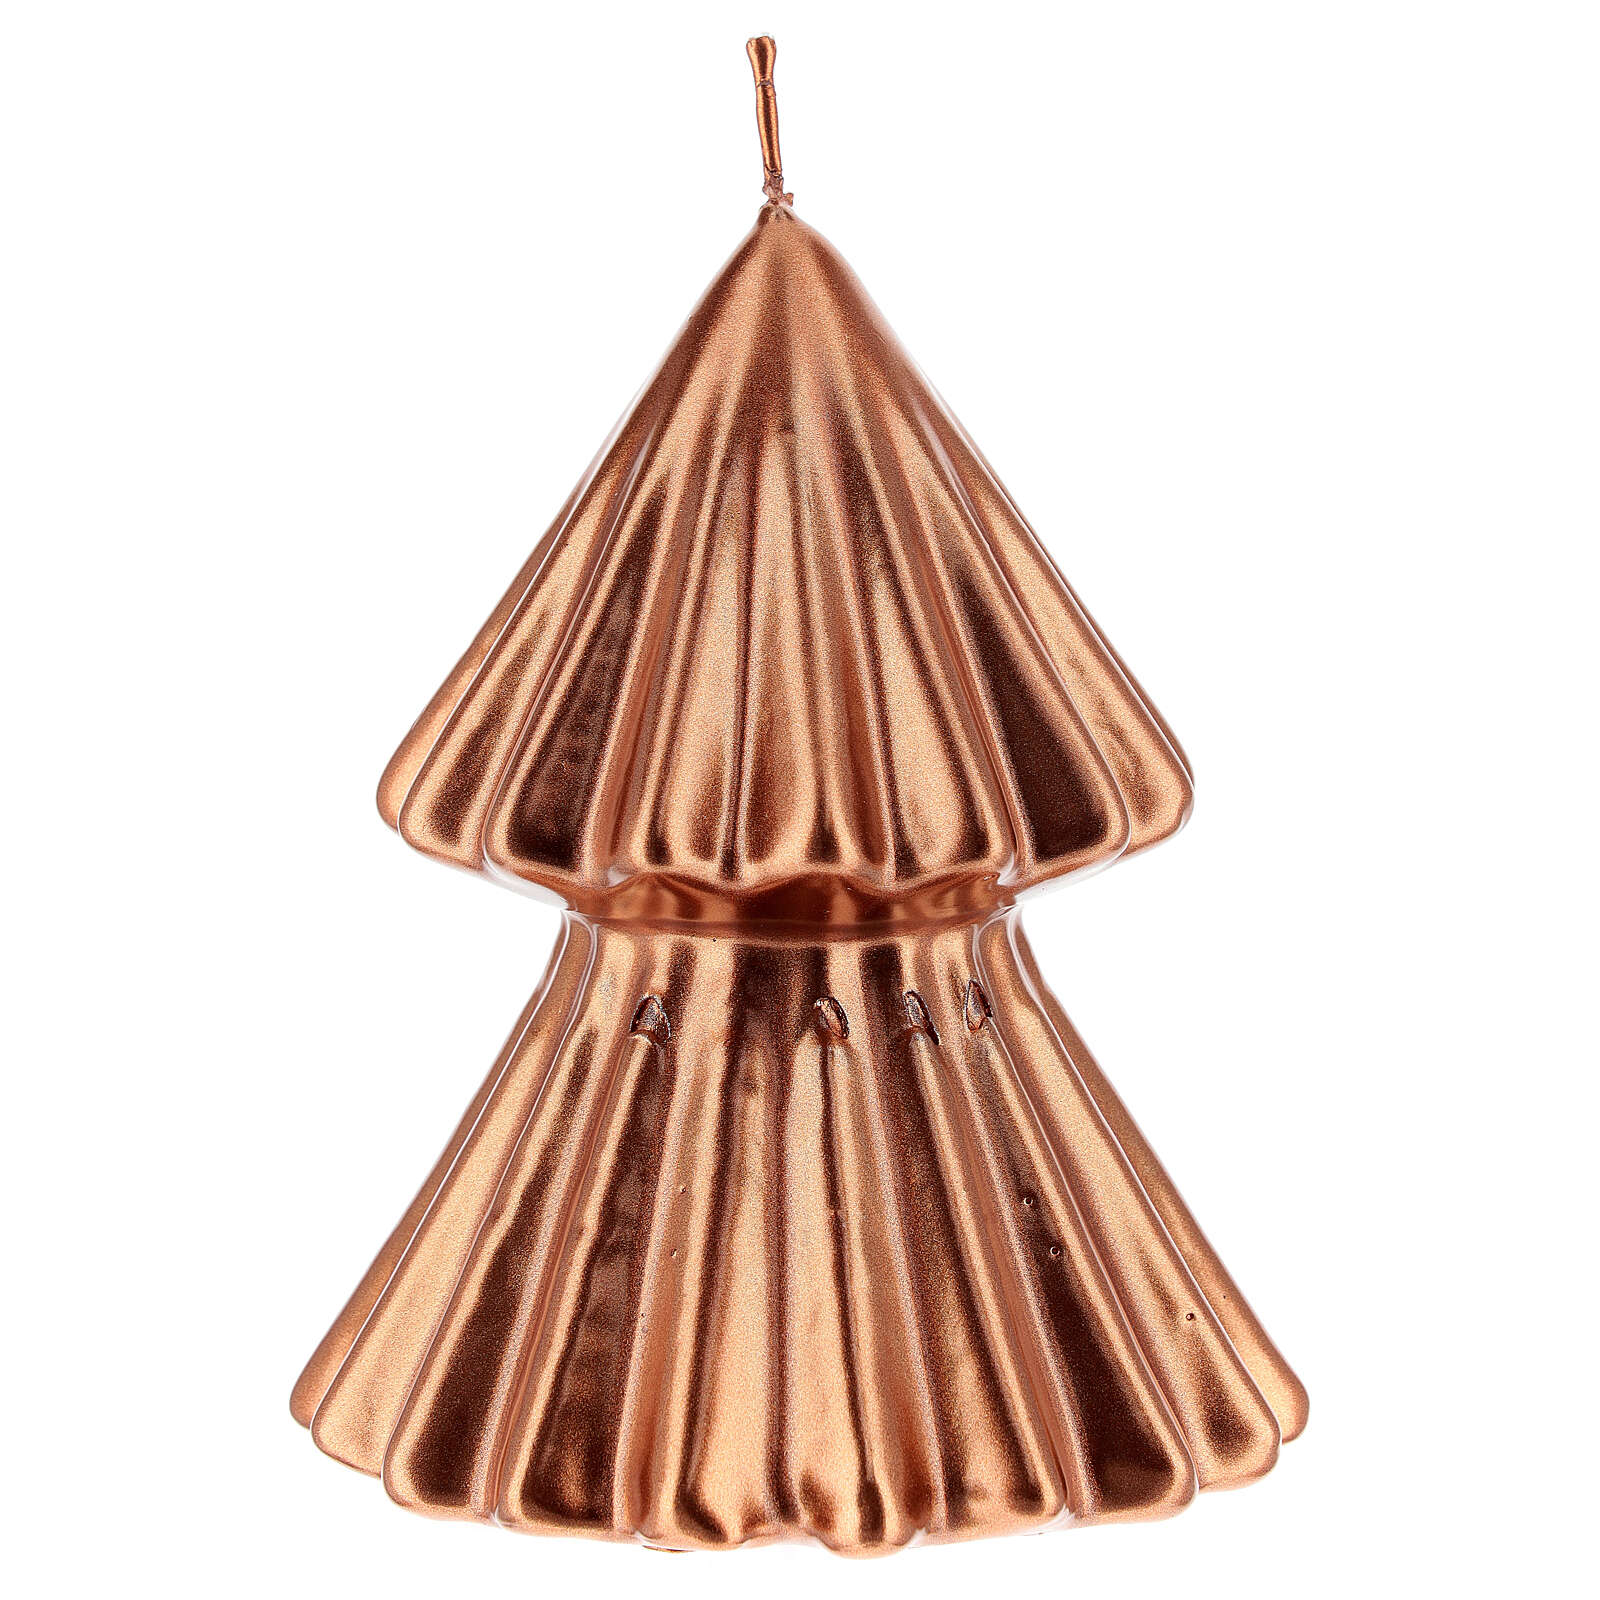 Copper Christmas tree candle Tokyo 5 in 3